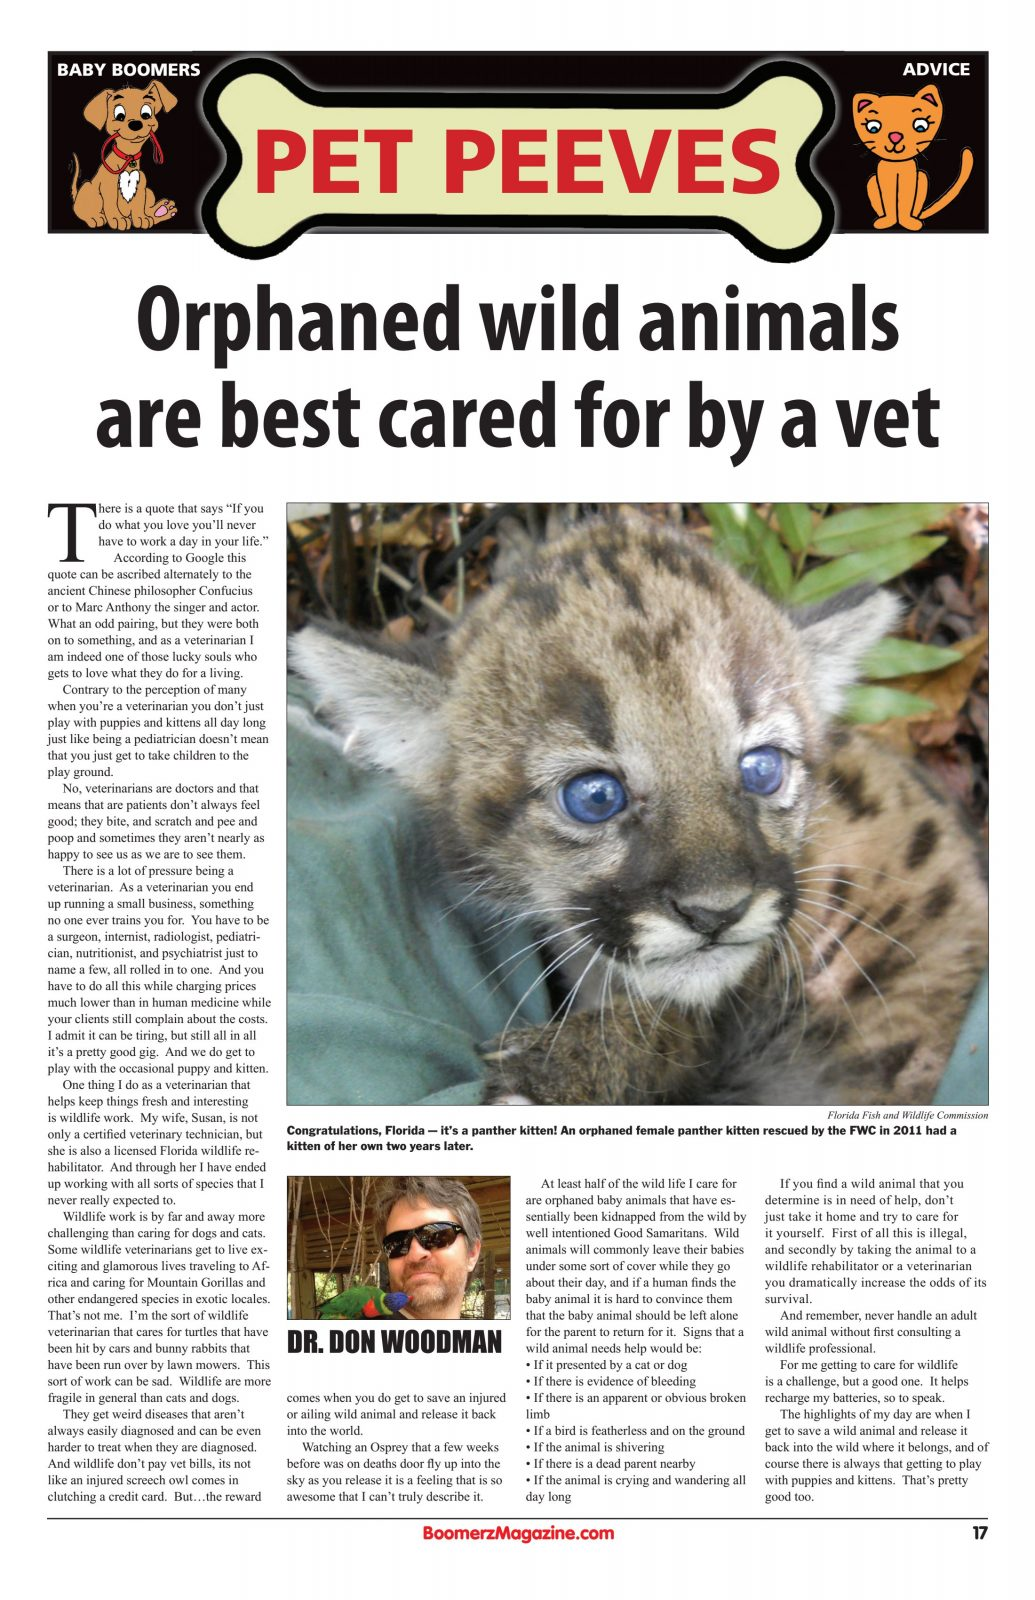 Orphaned wild animals bared for by vet